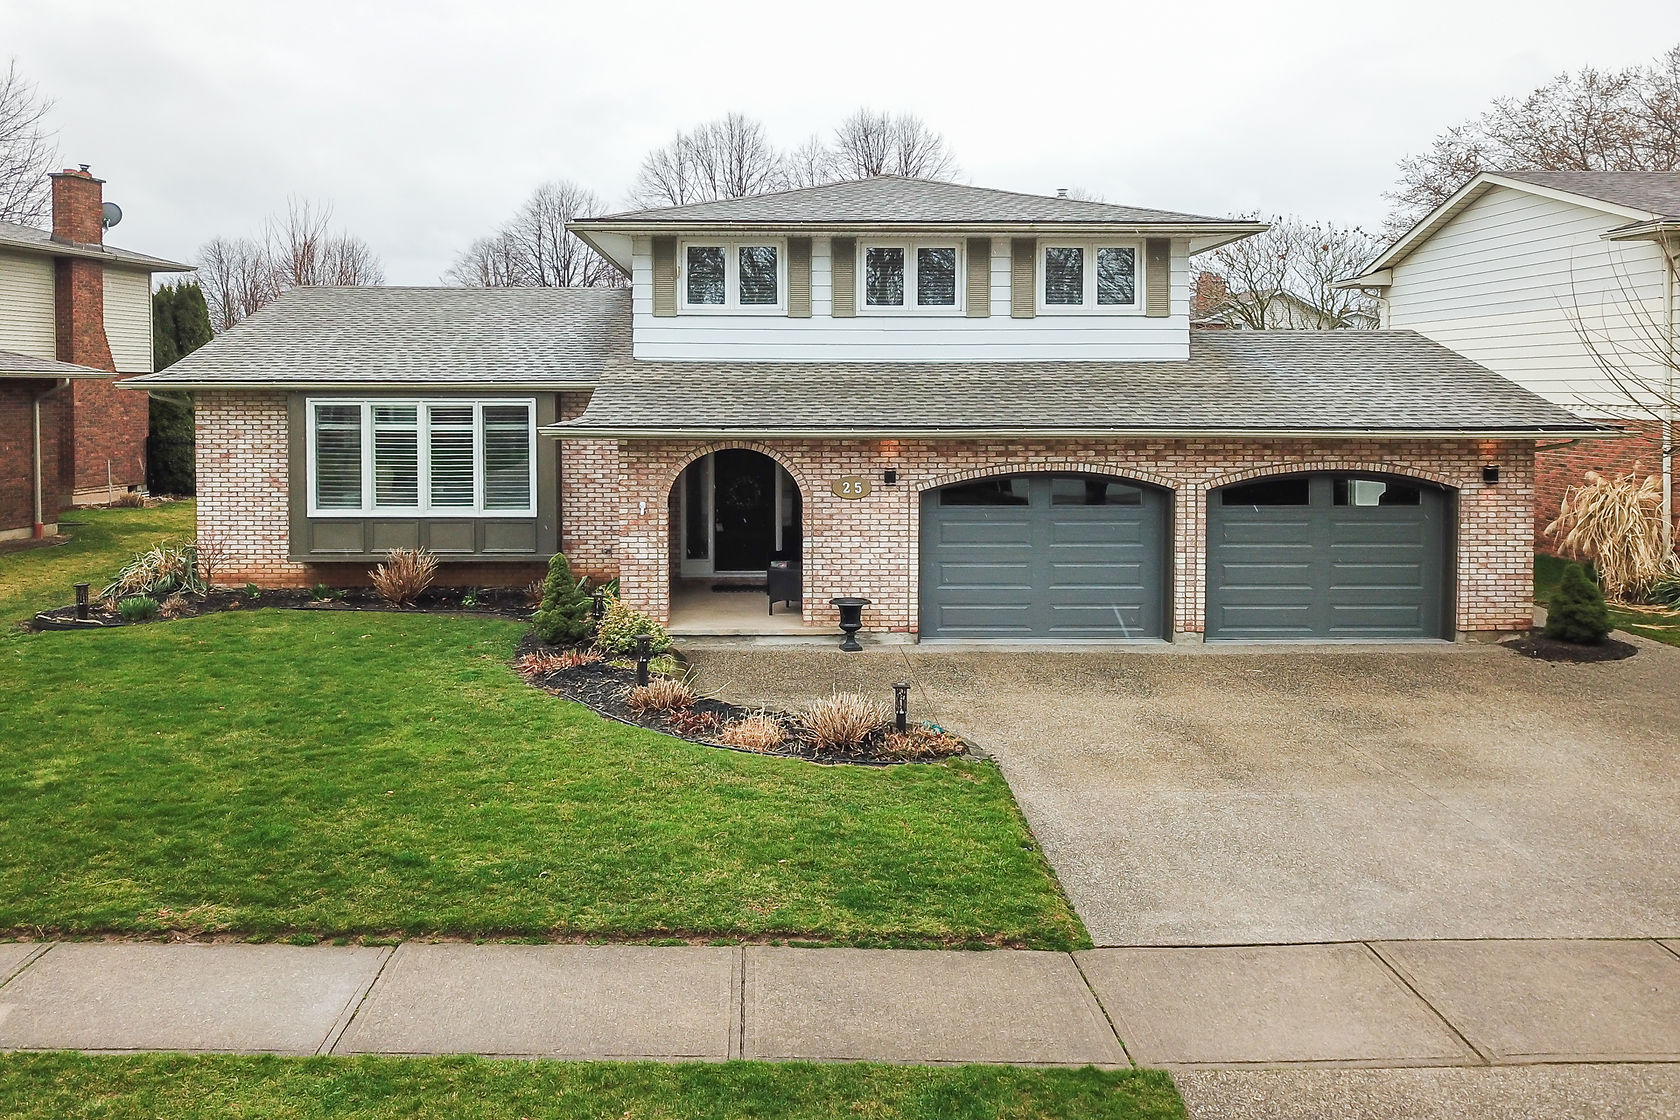 Property image for 25 Butler Crescent, St. Catharines